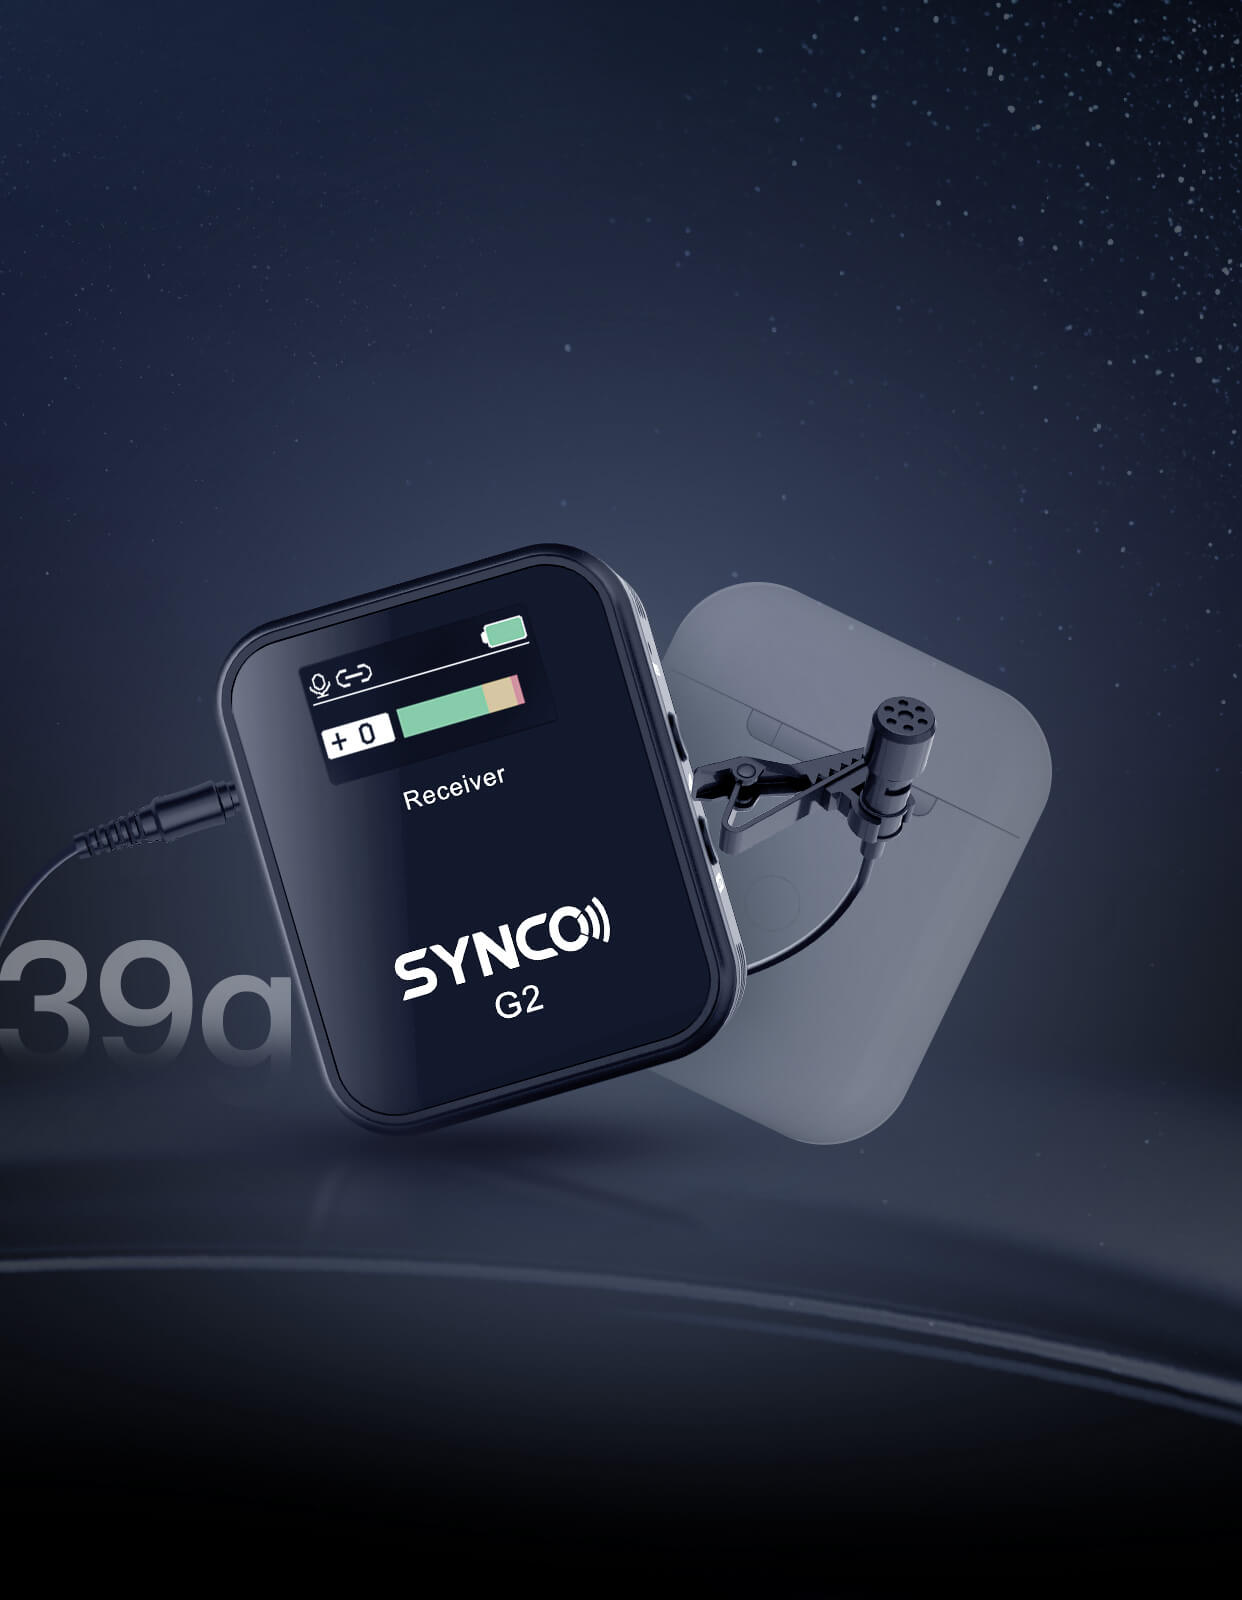 SYNCO G2(A1) Pocket Size for Invisible but Audible Effect